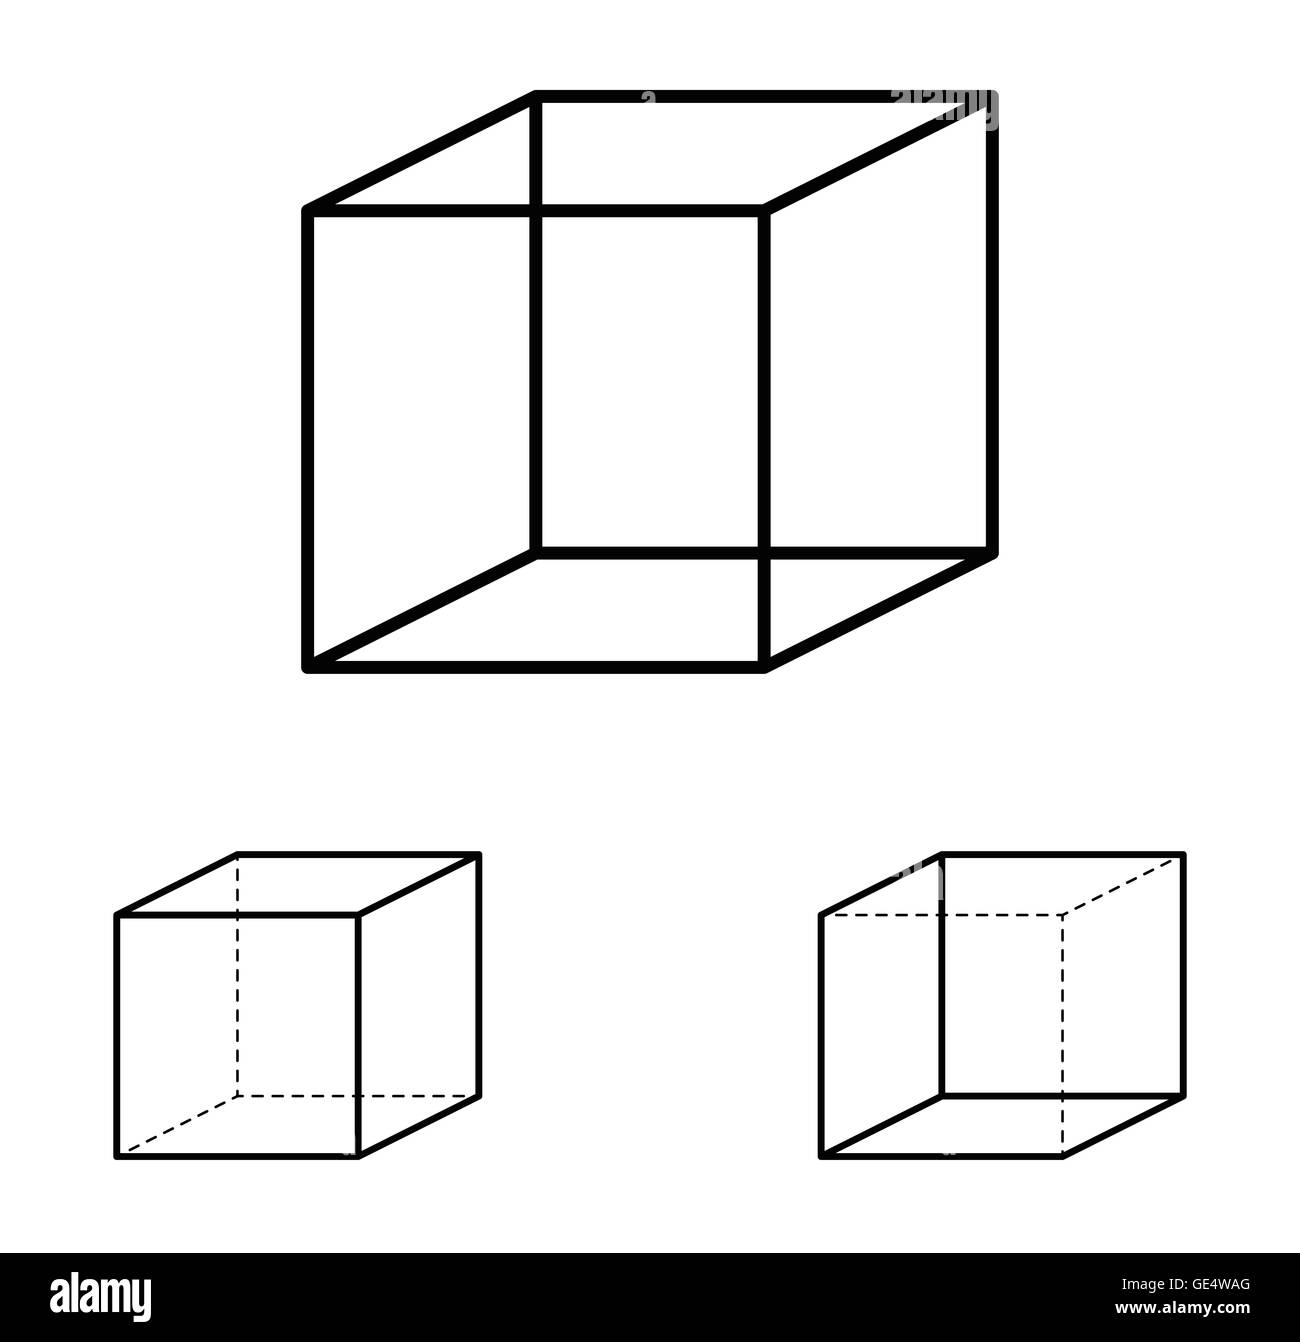 necker cube optical illusion ambiguous line drawing most people see the left interpretation of the cube